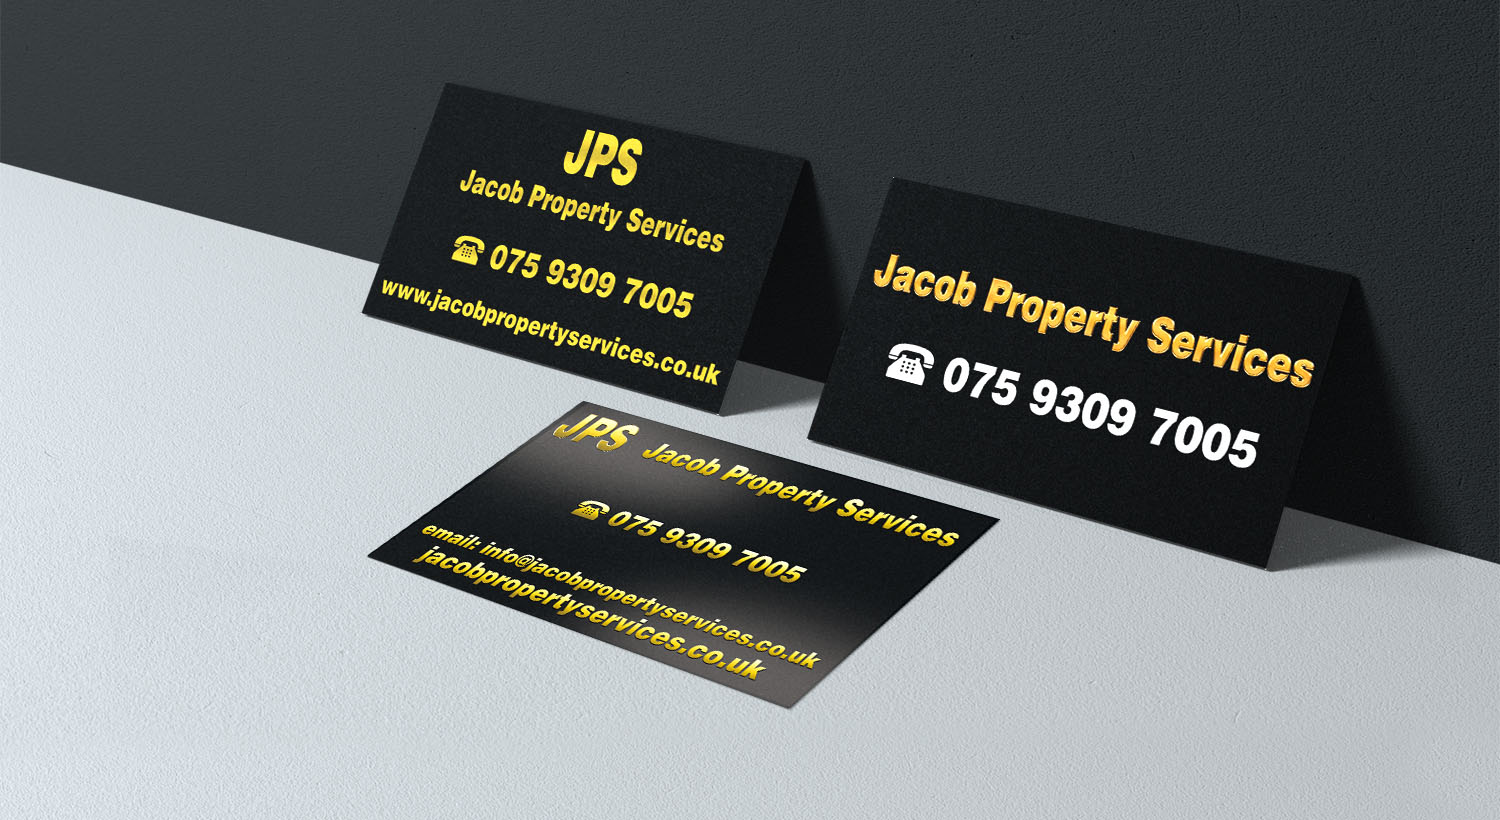 Jacob Property Services